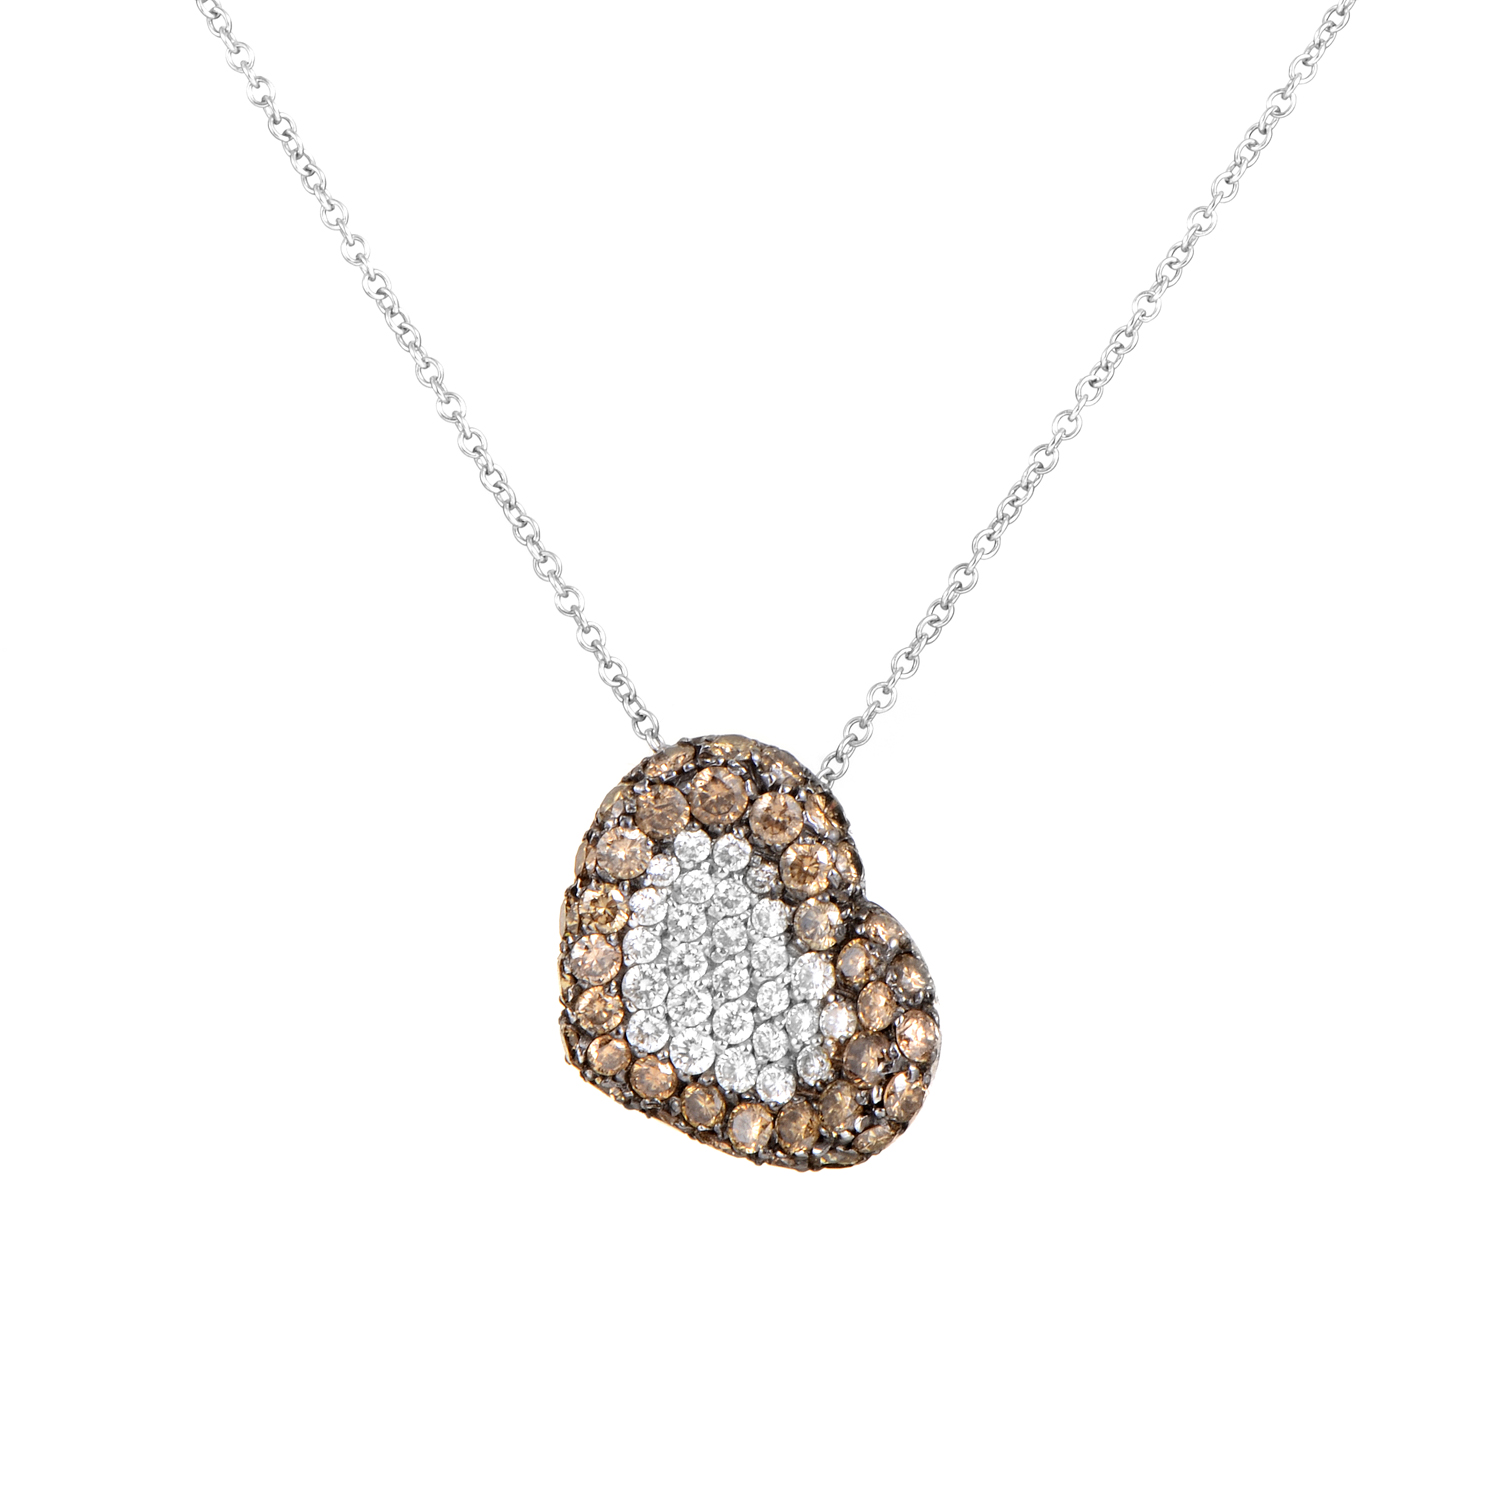 18K White Gold Brown & White Diamond Heart Pave Pendant Necklace